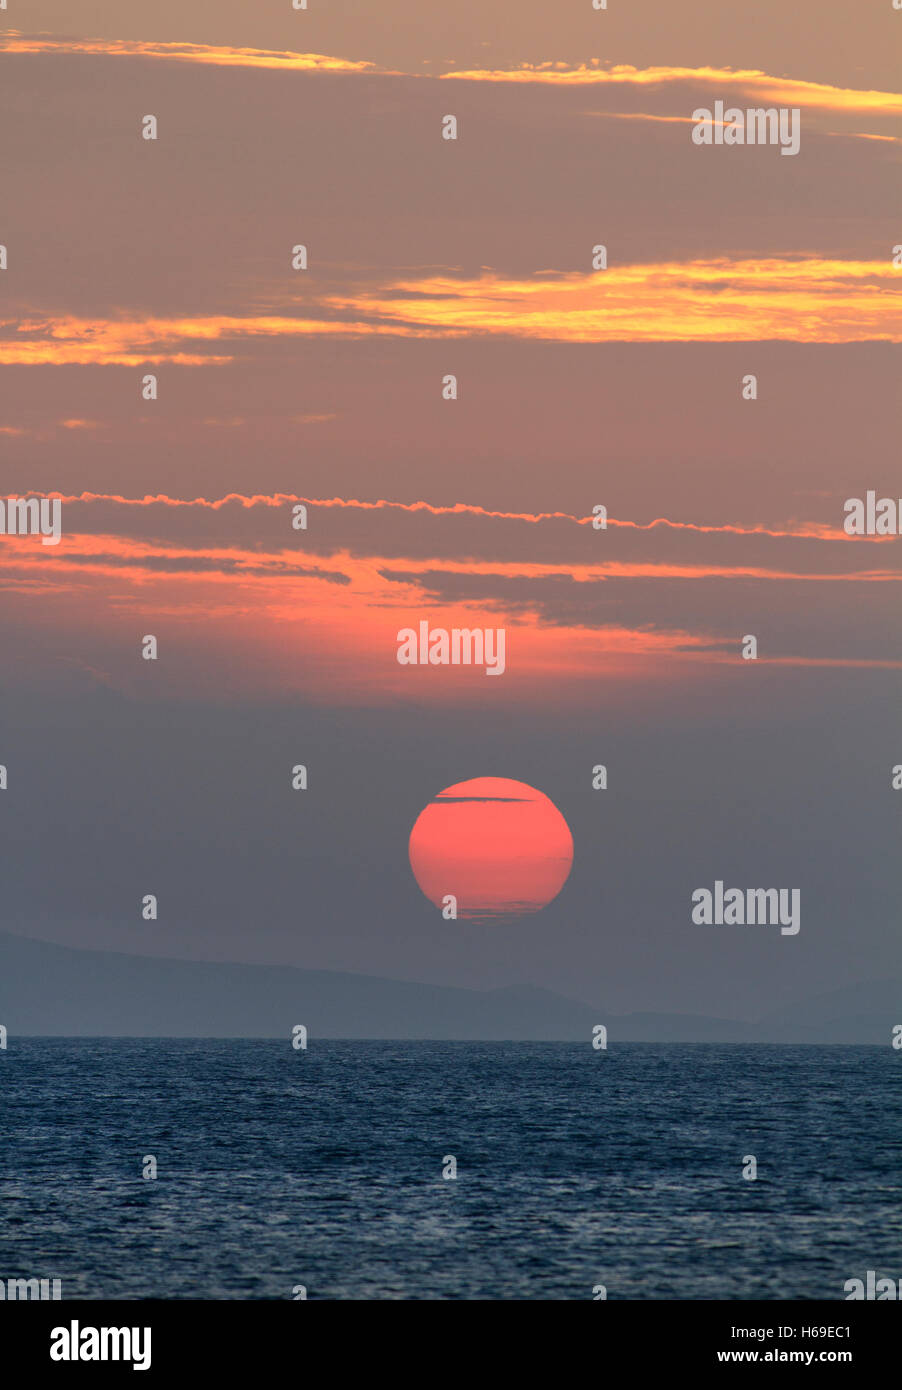 Sunset over the ocean with clouds and water with copy space - Stock Image